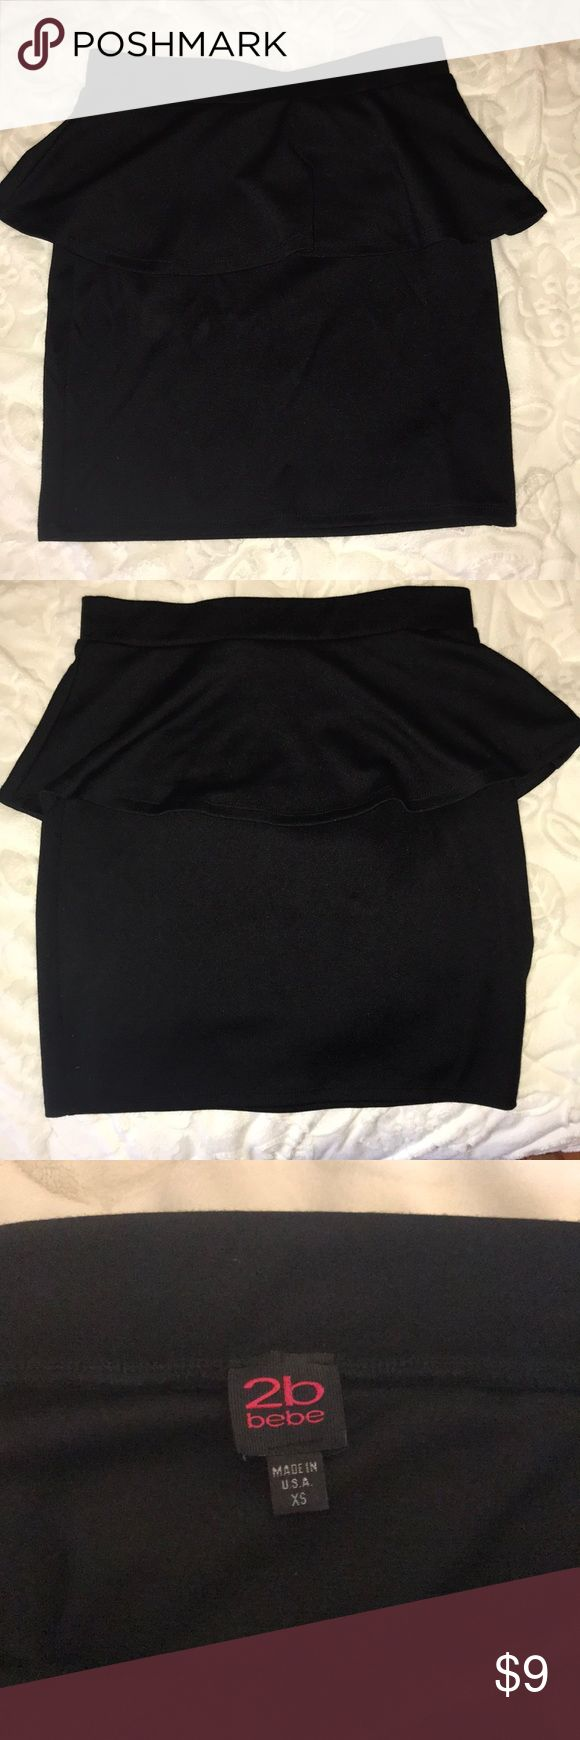 Black Peplum Skirt Elastic waist  Worn only once Great for a date night look or a girls night out 2B Bebe Skirts Mini